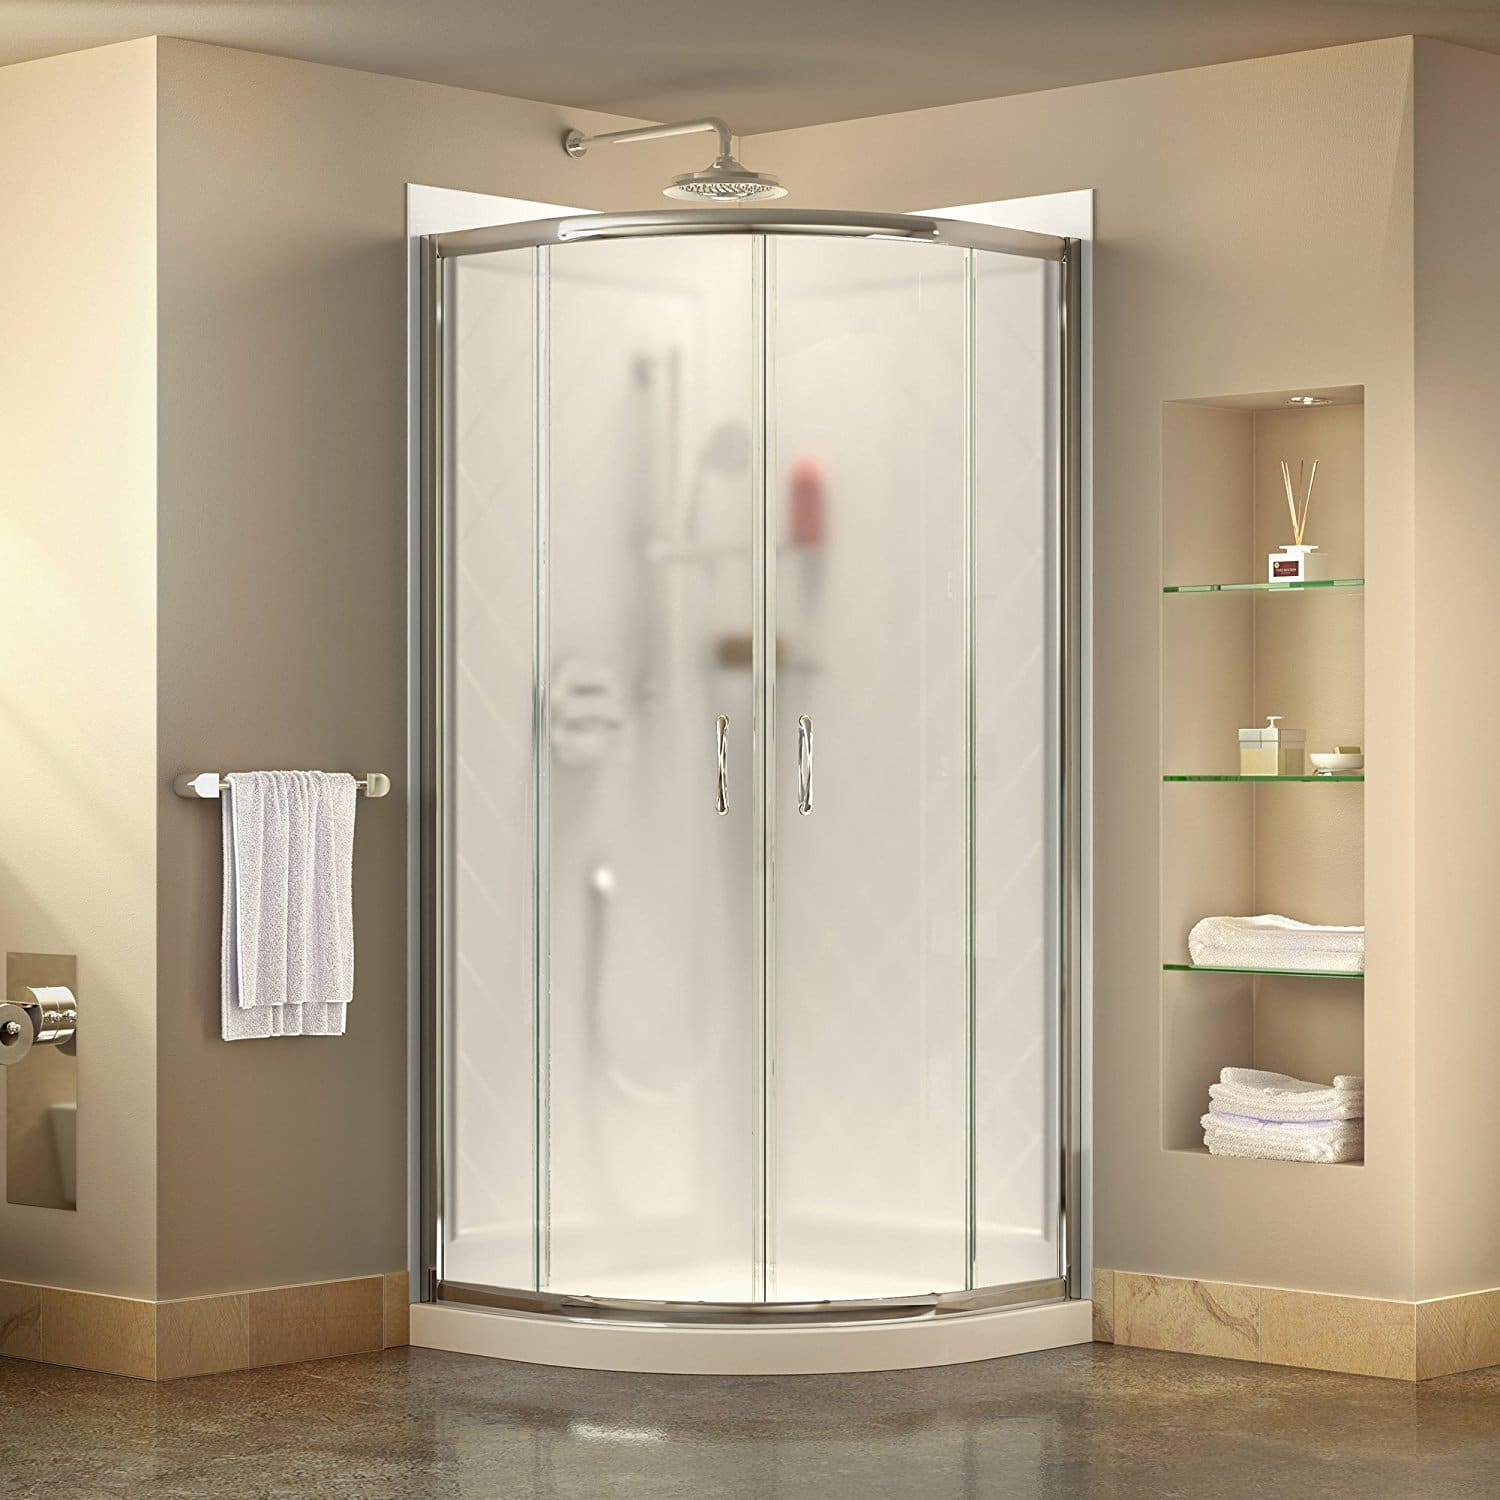 5 Best Shower Enclosure Kits For Bathrooms June 2018 Reviews